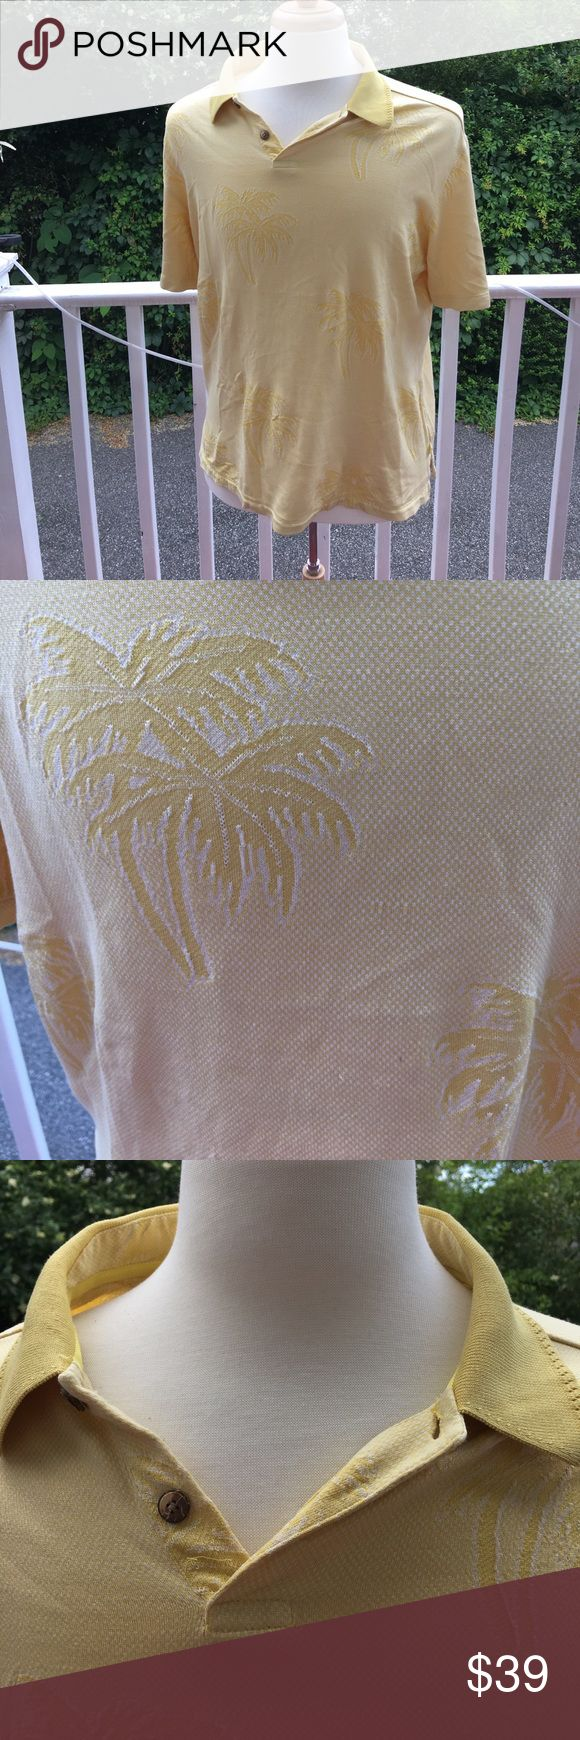 TONY BAHAMA SILK COTTON SOFT YELLOW POLO SHIRT BEAUTIFUL YELLOW PALM TREES SUBTLY ADORN THIS POLO SHIRT. MACHINE WASHAble Tommy Bahama Shirts Polos